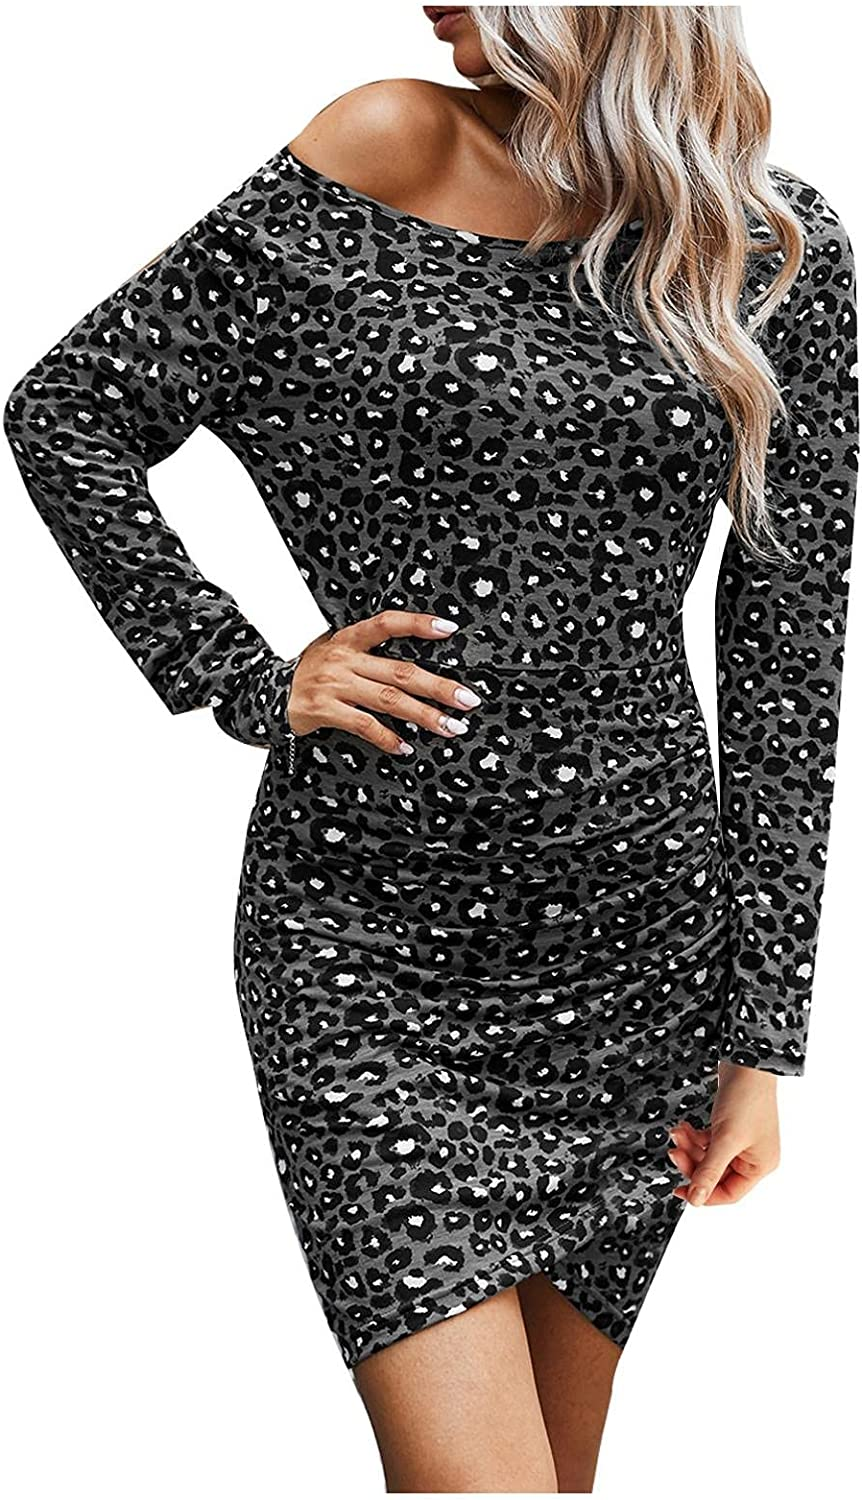 Kraoden Women's Sexy Leopard Dress One Shoulder Long Sleeves Knee-Length Ruched Bodycon Club Mini Cocktail Dress